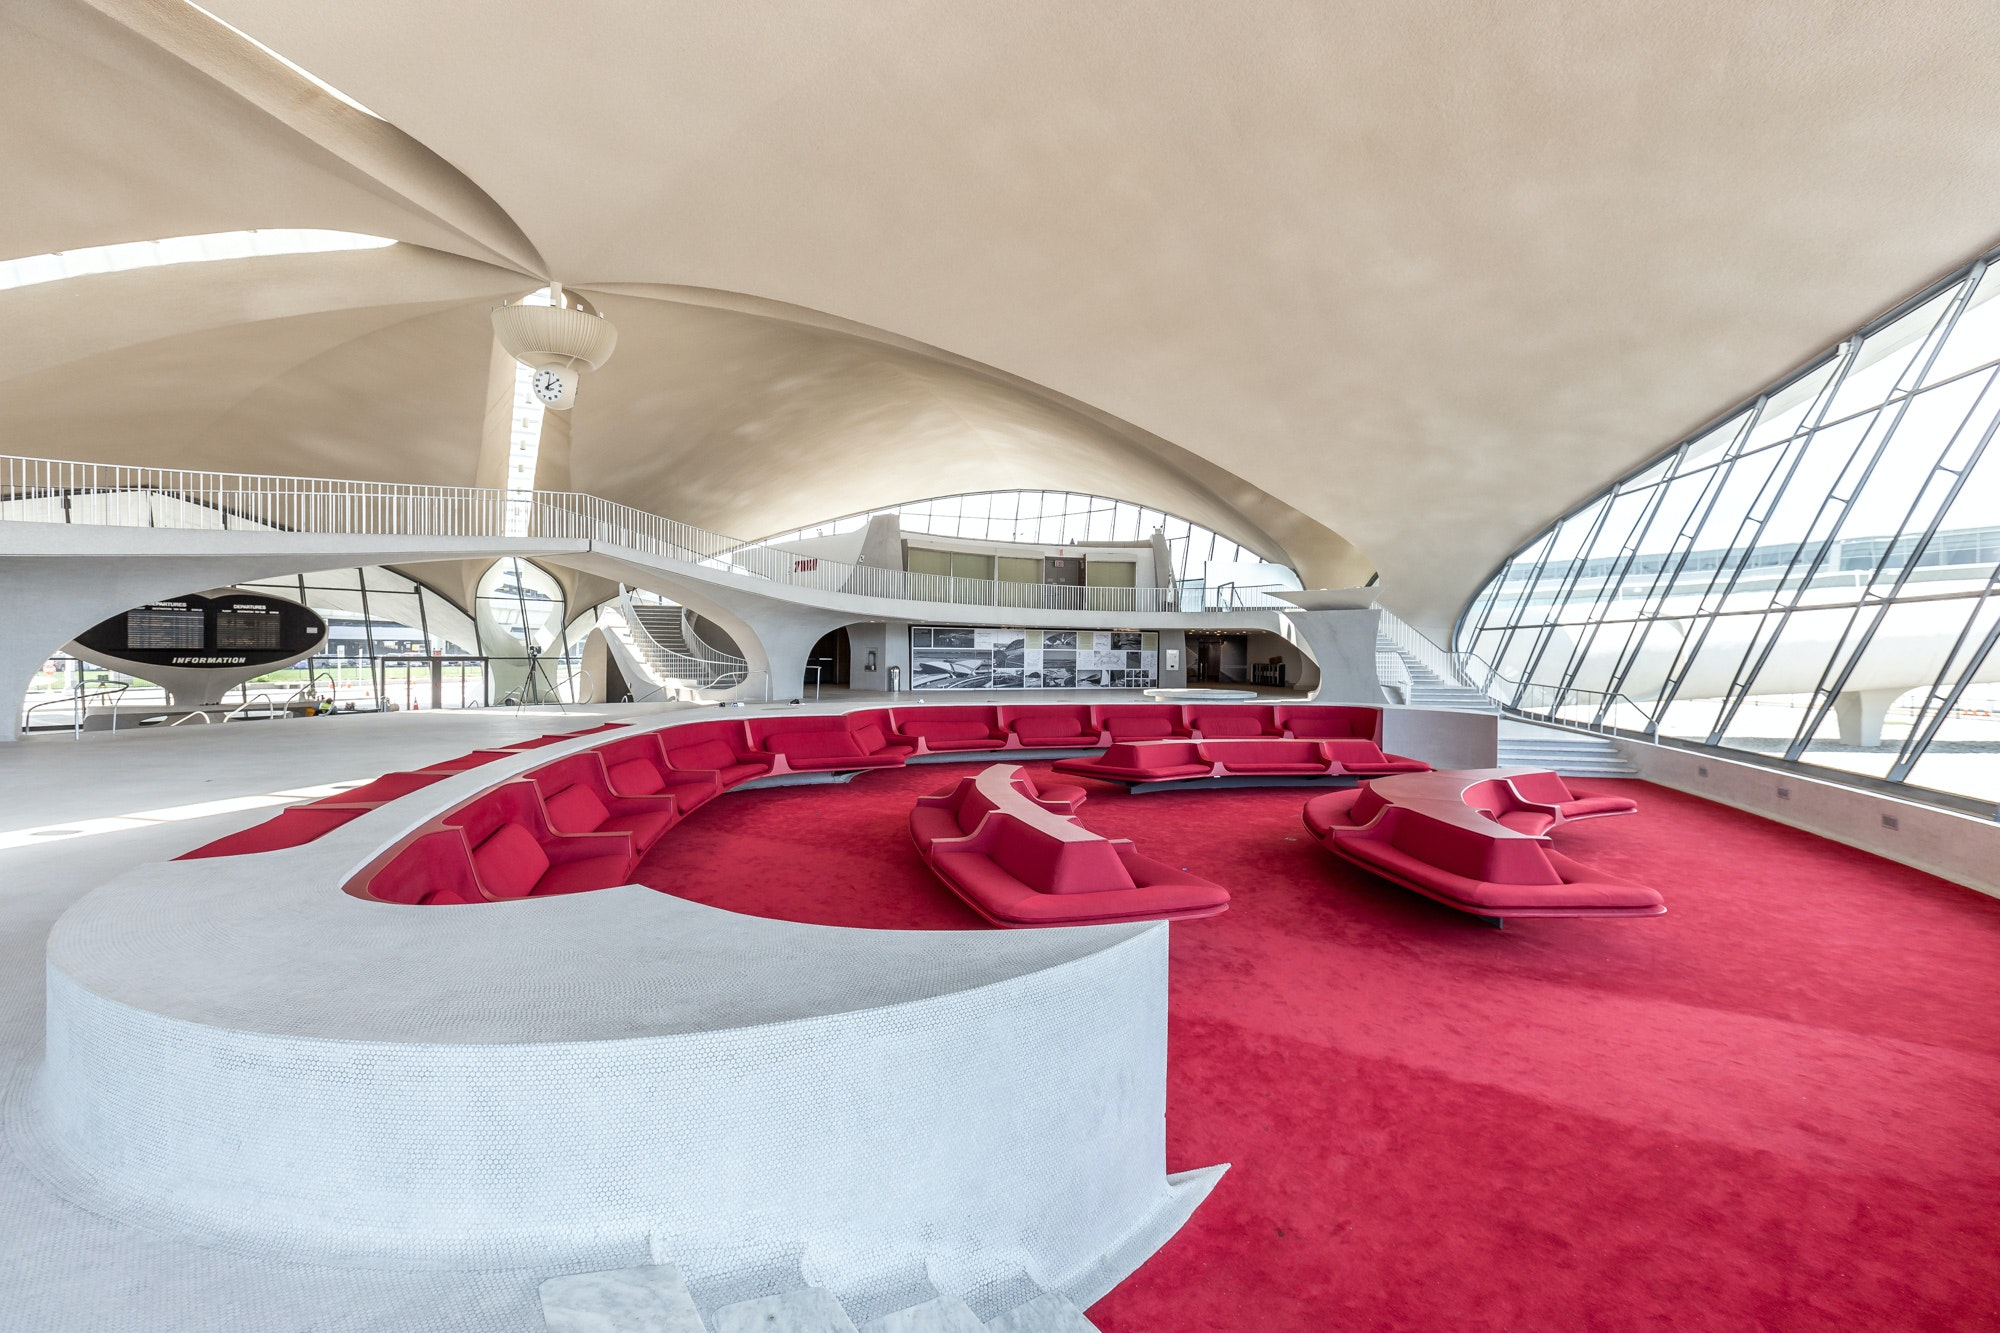 A Jean-Georges Vongerichten restaurant at the TWA Hotel will be located inside the historic terminal building in the space above The Sunken Lounge.